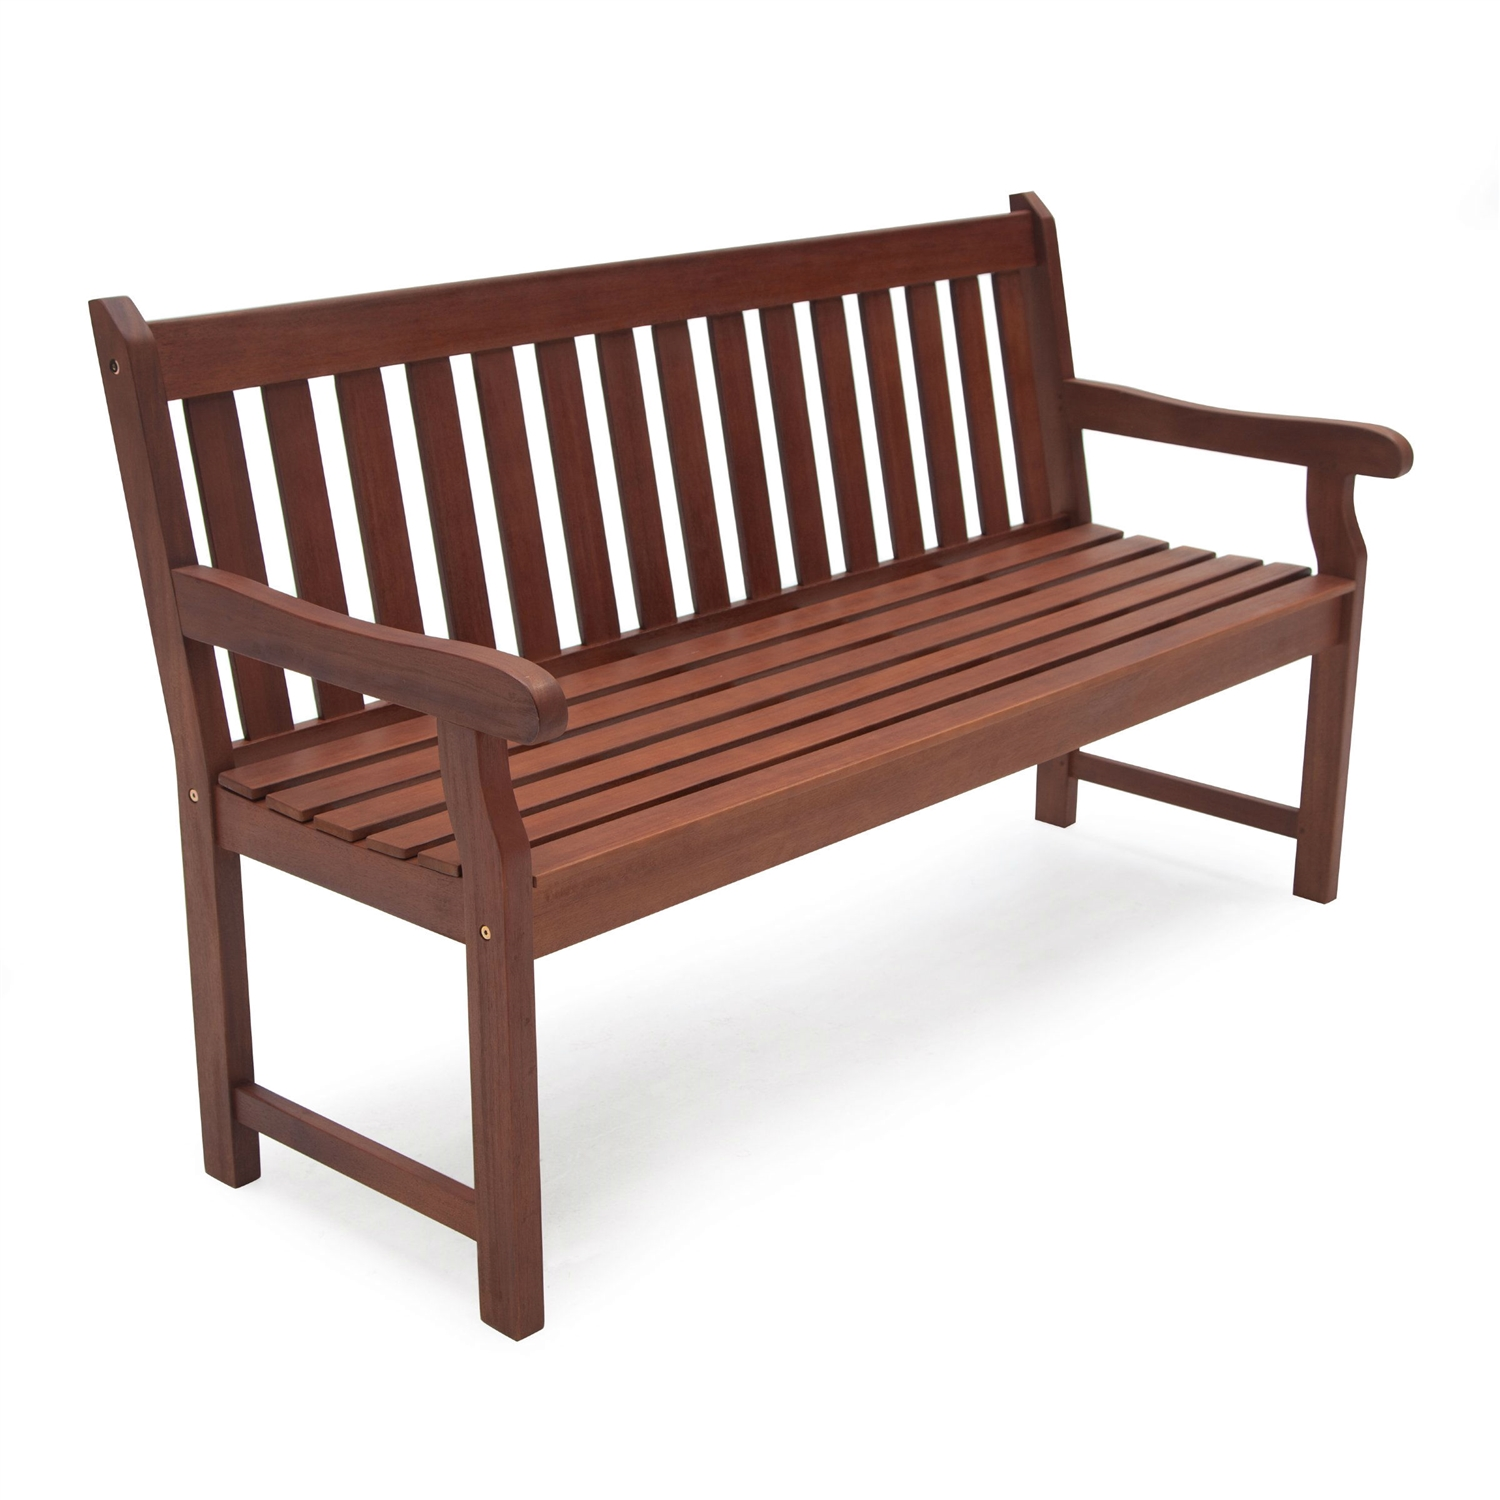 4 ft outdoor love seat garden bench in natural wood finish - Wooden Garden Furniture Love Seats